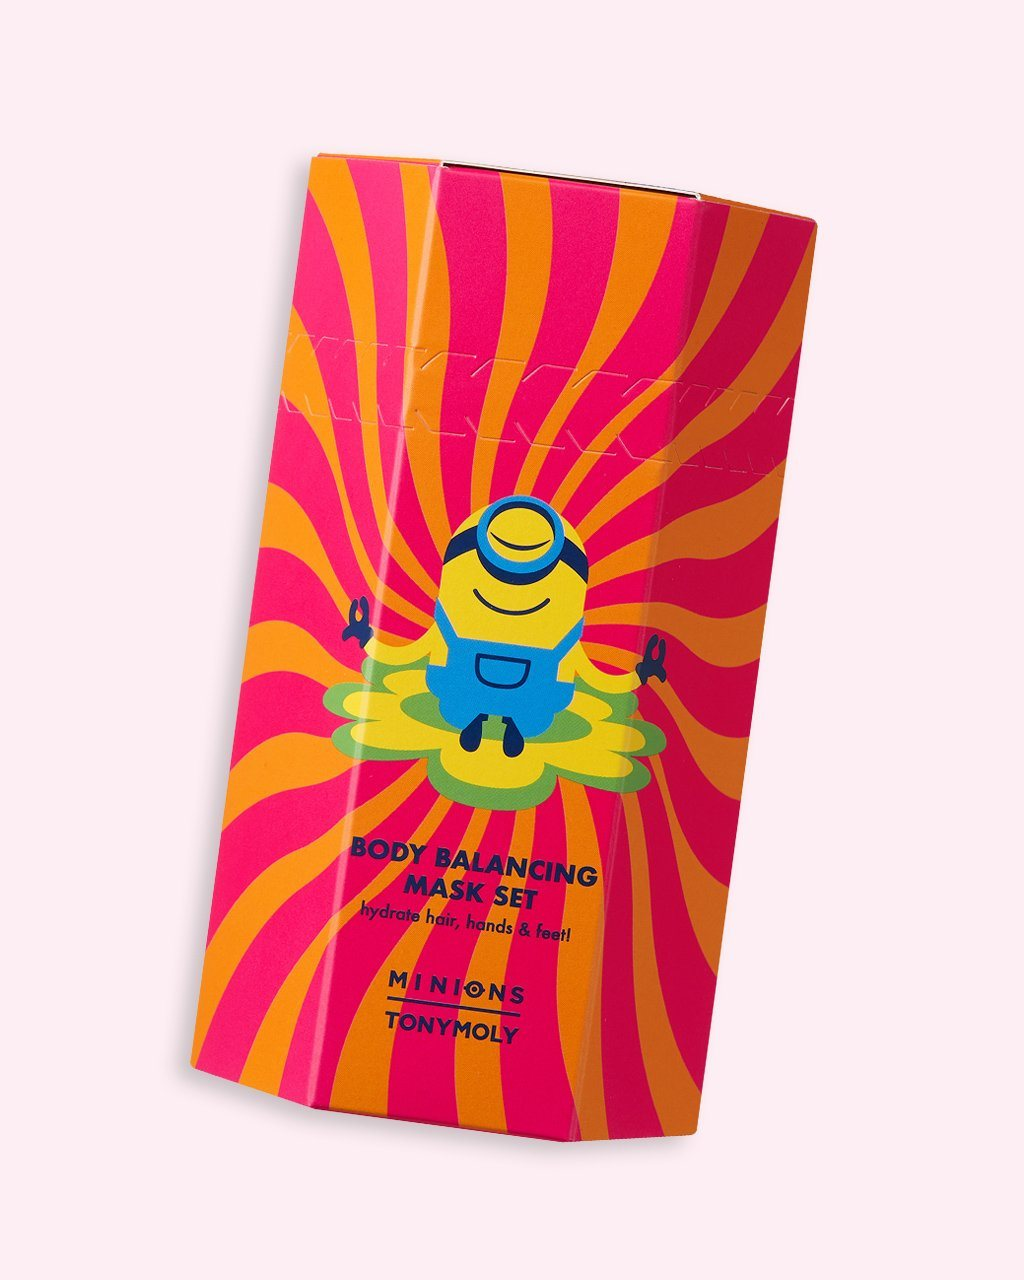 Minions Body Balancing Mask Set